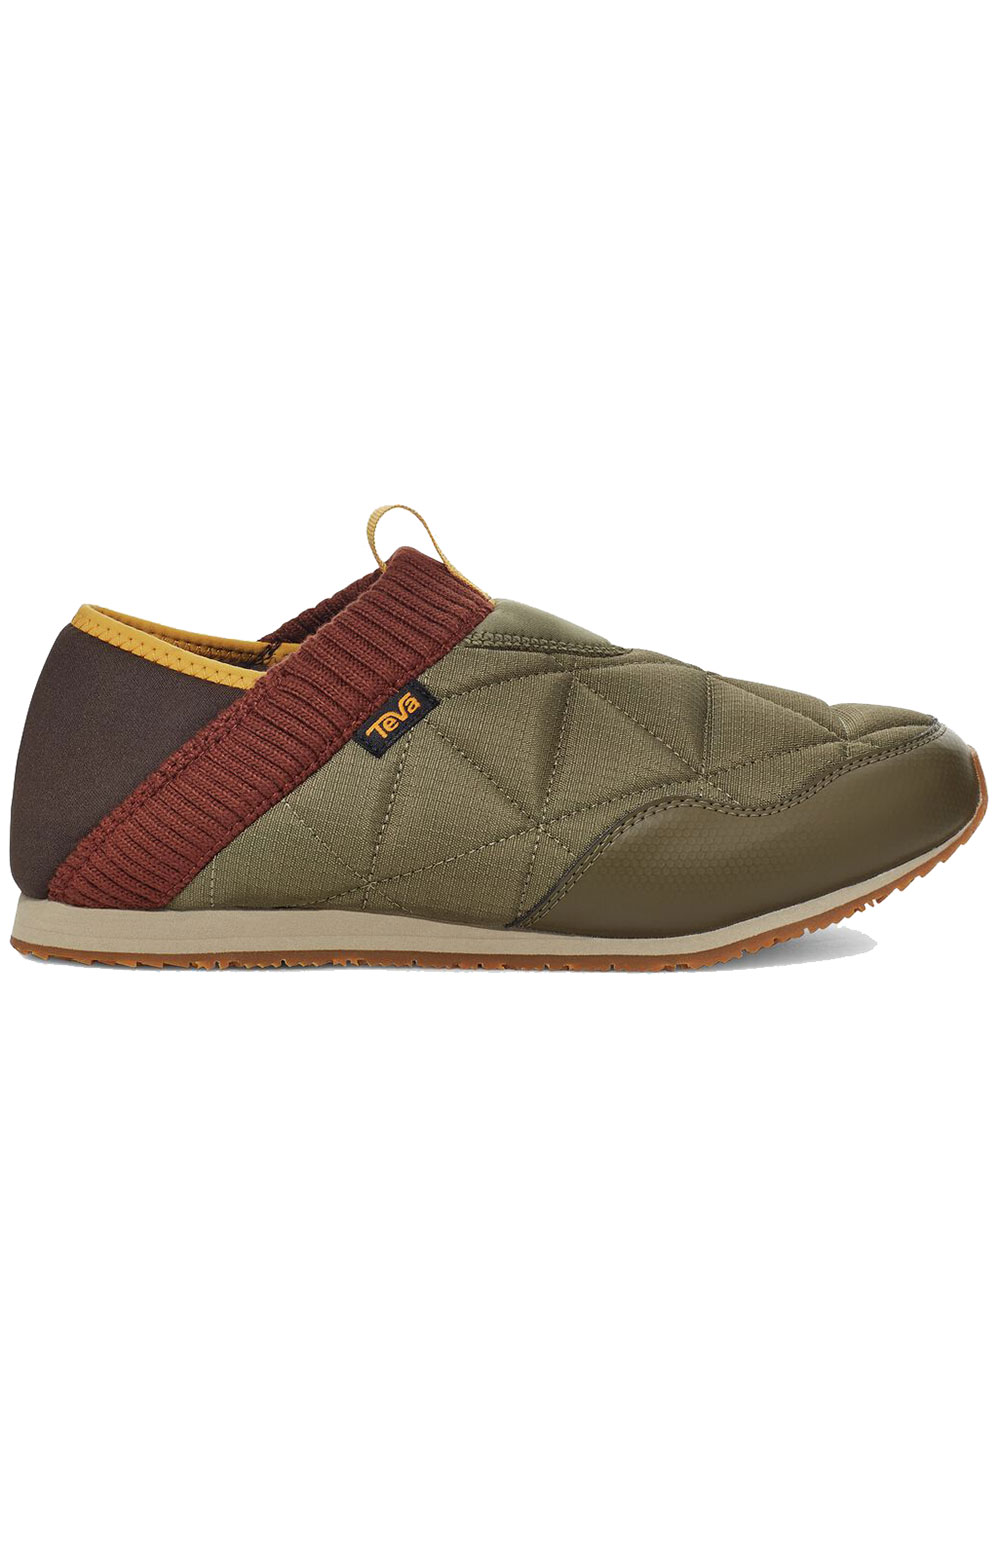 (1125472) ReEMBER Moccasins - Olive/Brown Multi